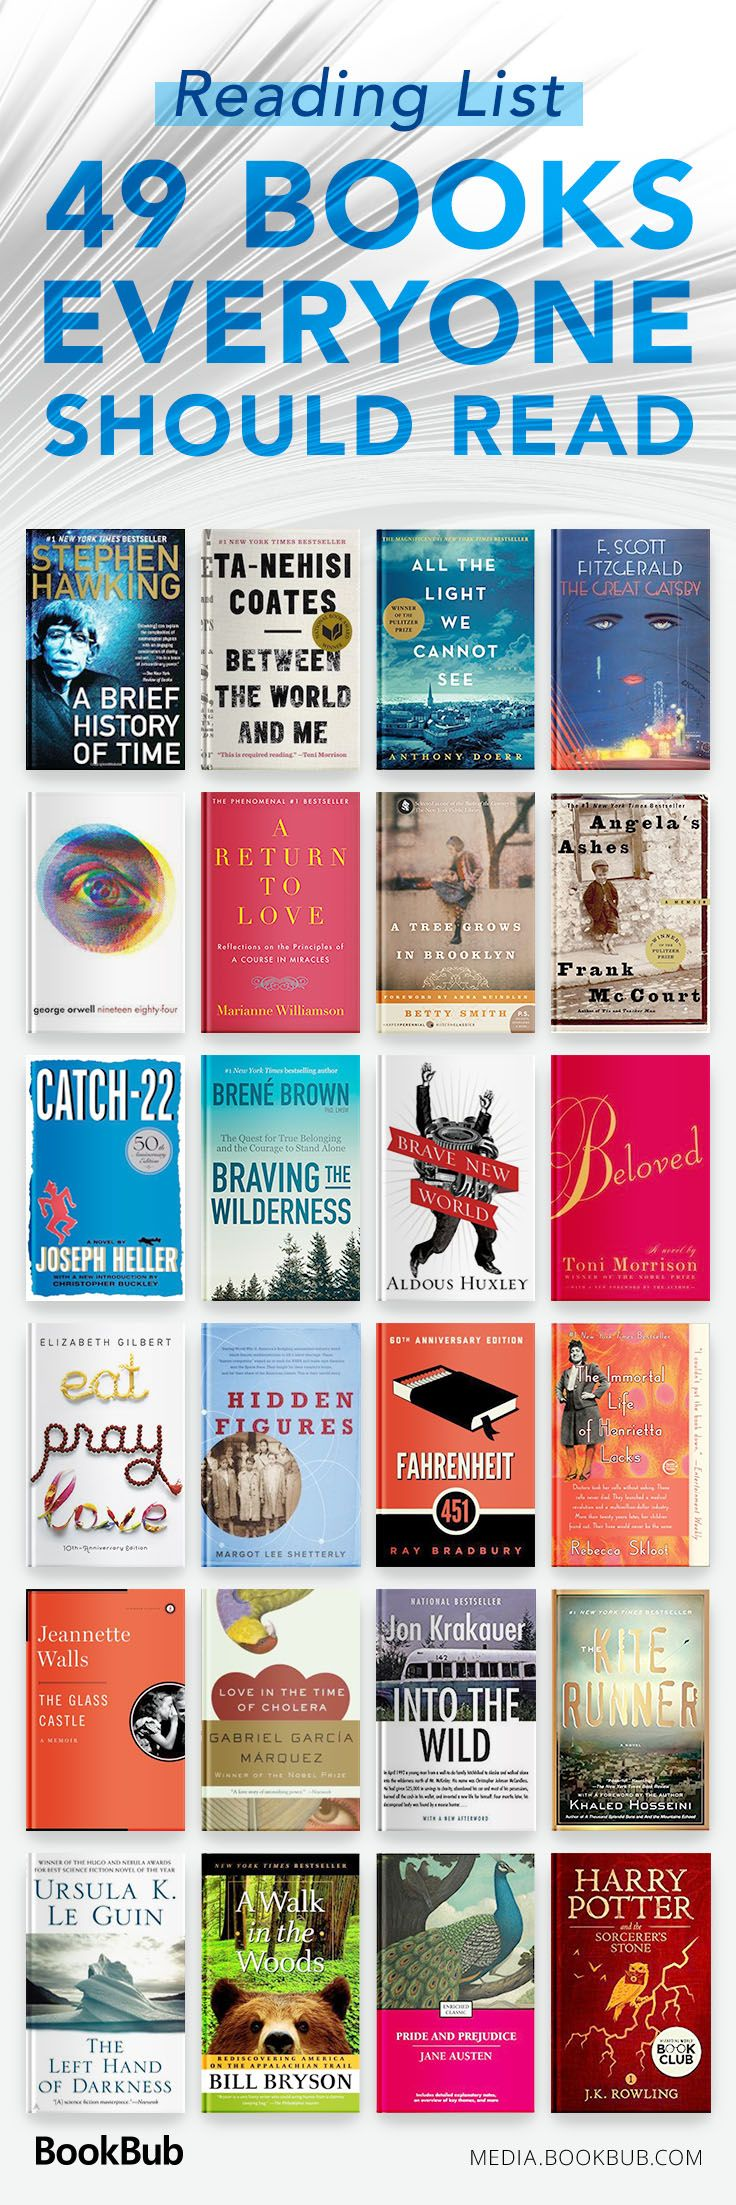 49 books everyone should read in their lifetime, including a mix of classic books, young adult books, and other life changing novels.